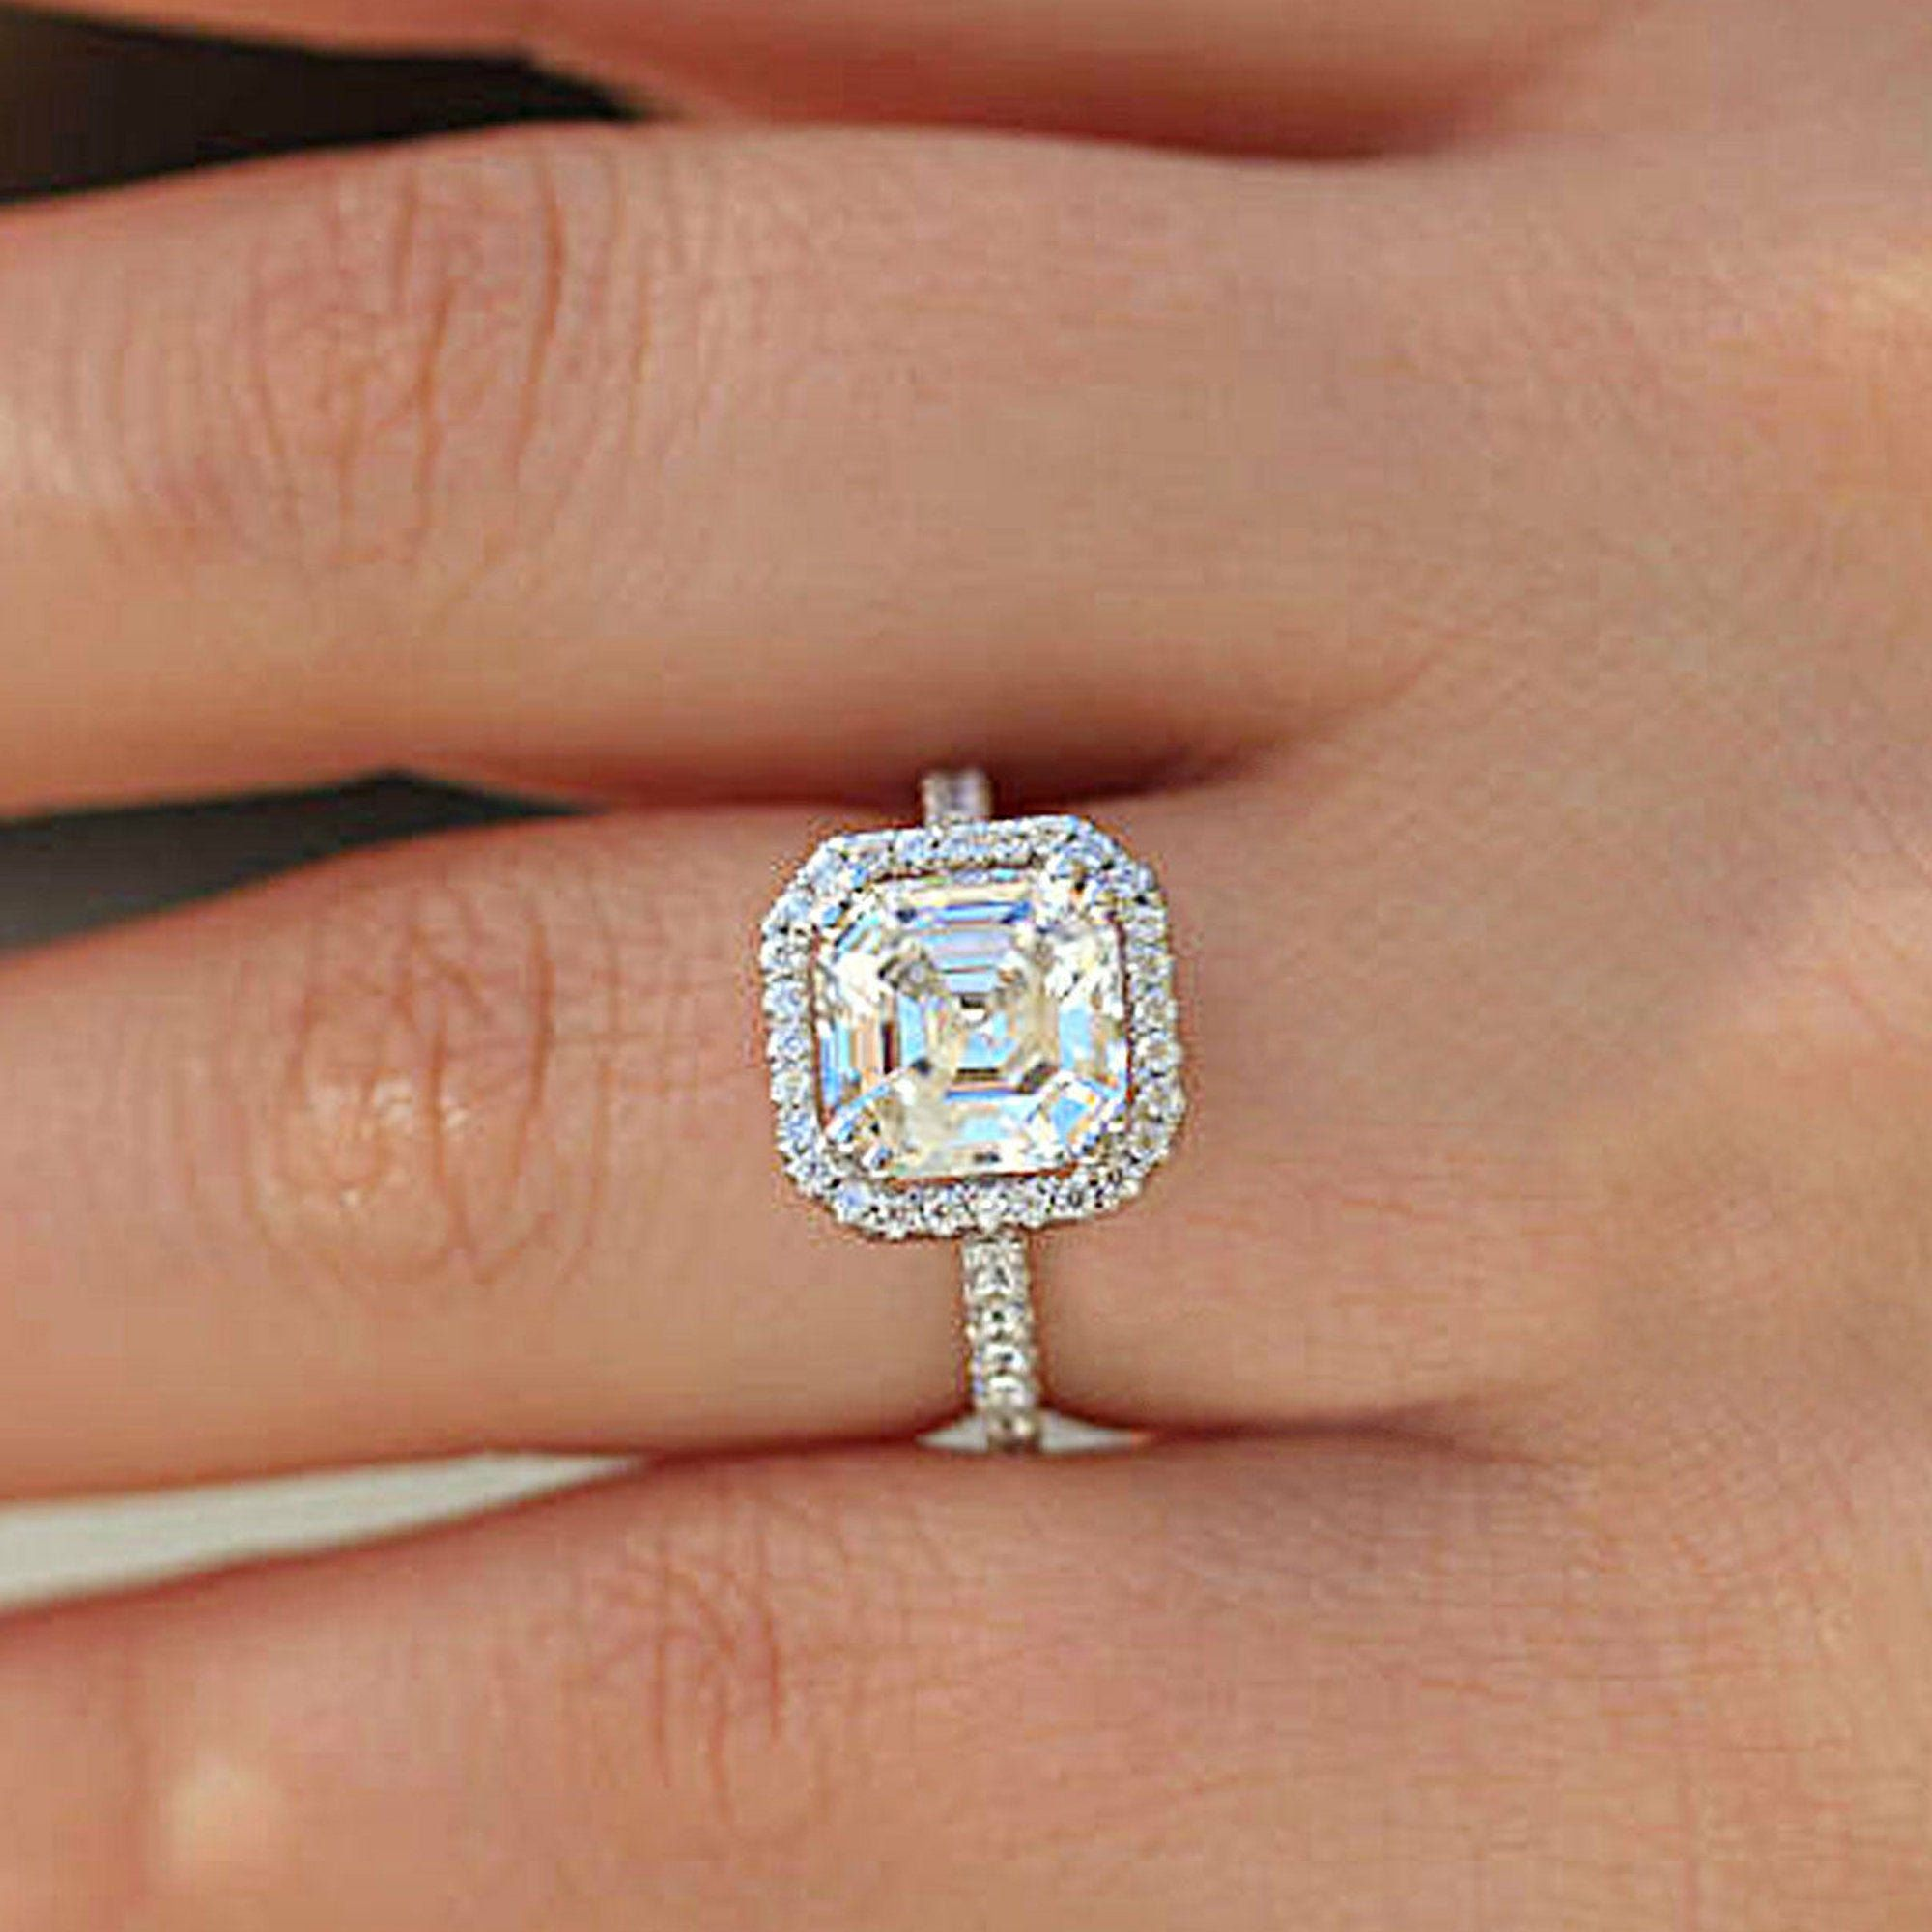 2 7 Carat Asscher Halo Moissanite Diamond Ring 18kt White Gold Ring Wedding Ring Anniversary Ring Engagement Ring Gift For Her Handmade Ring Engagement Ring Gift Diamond Rings Asscher Diamond